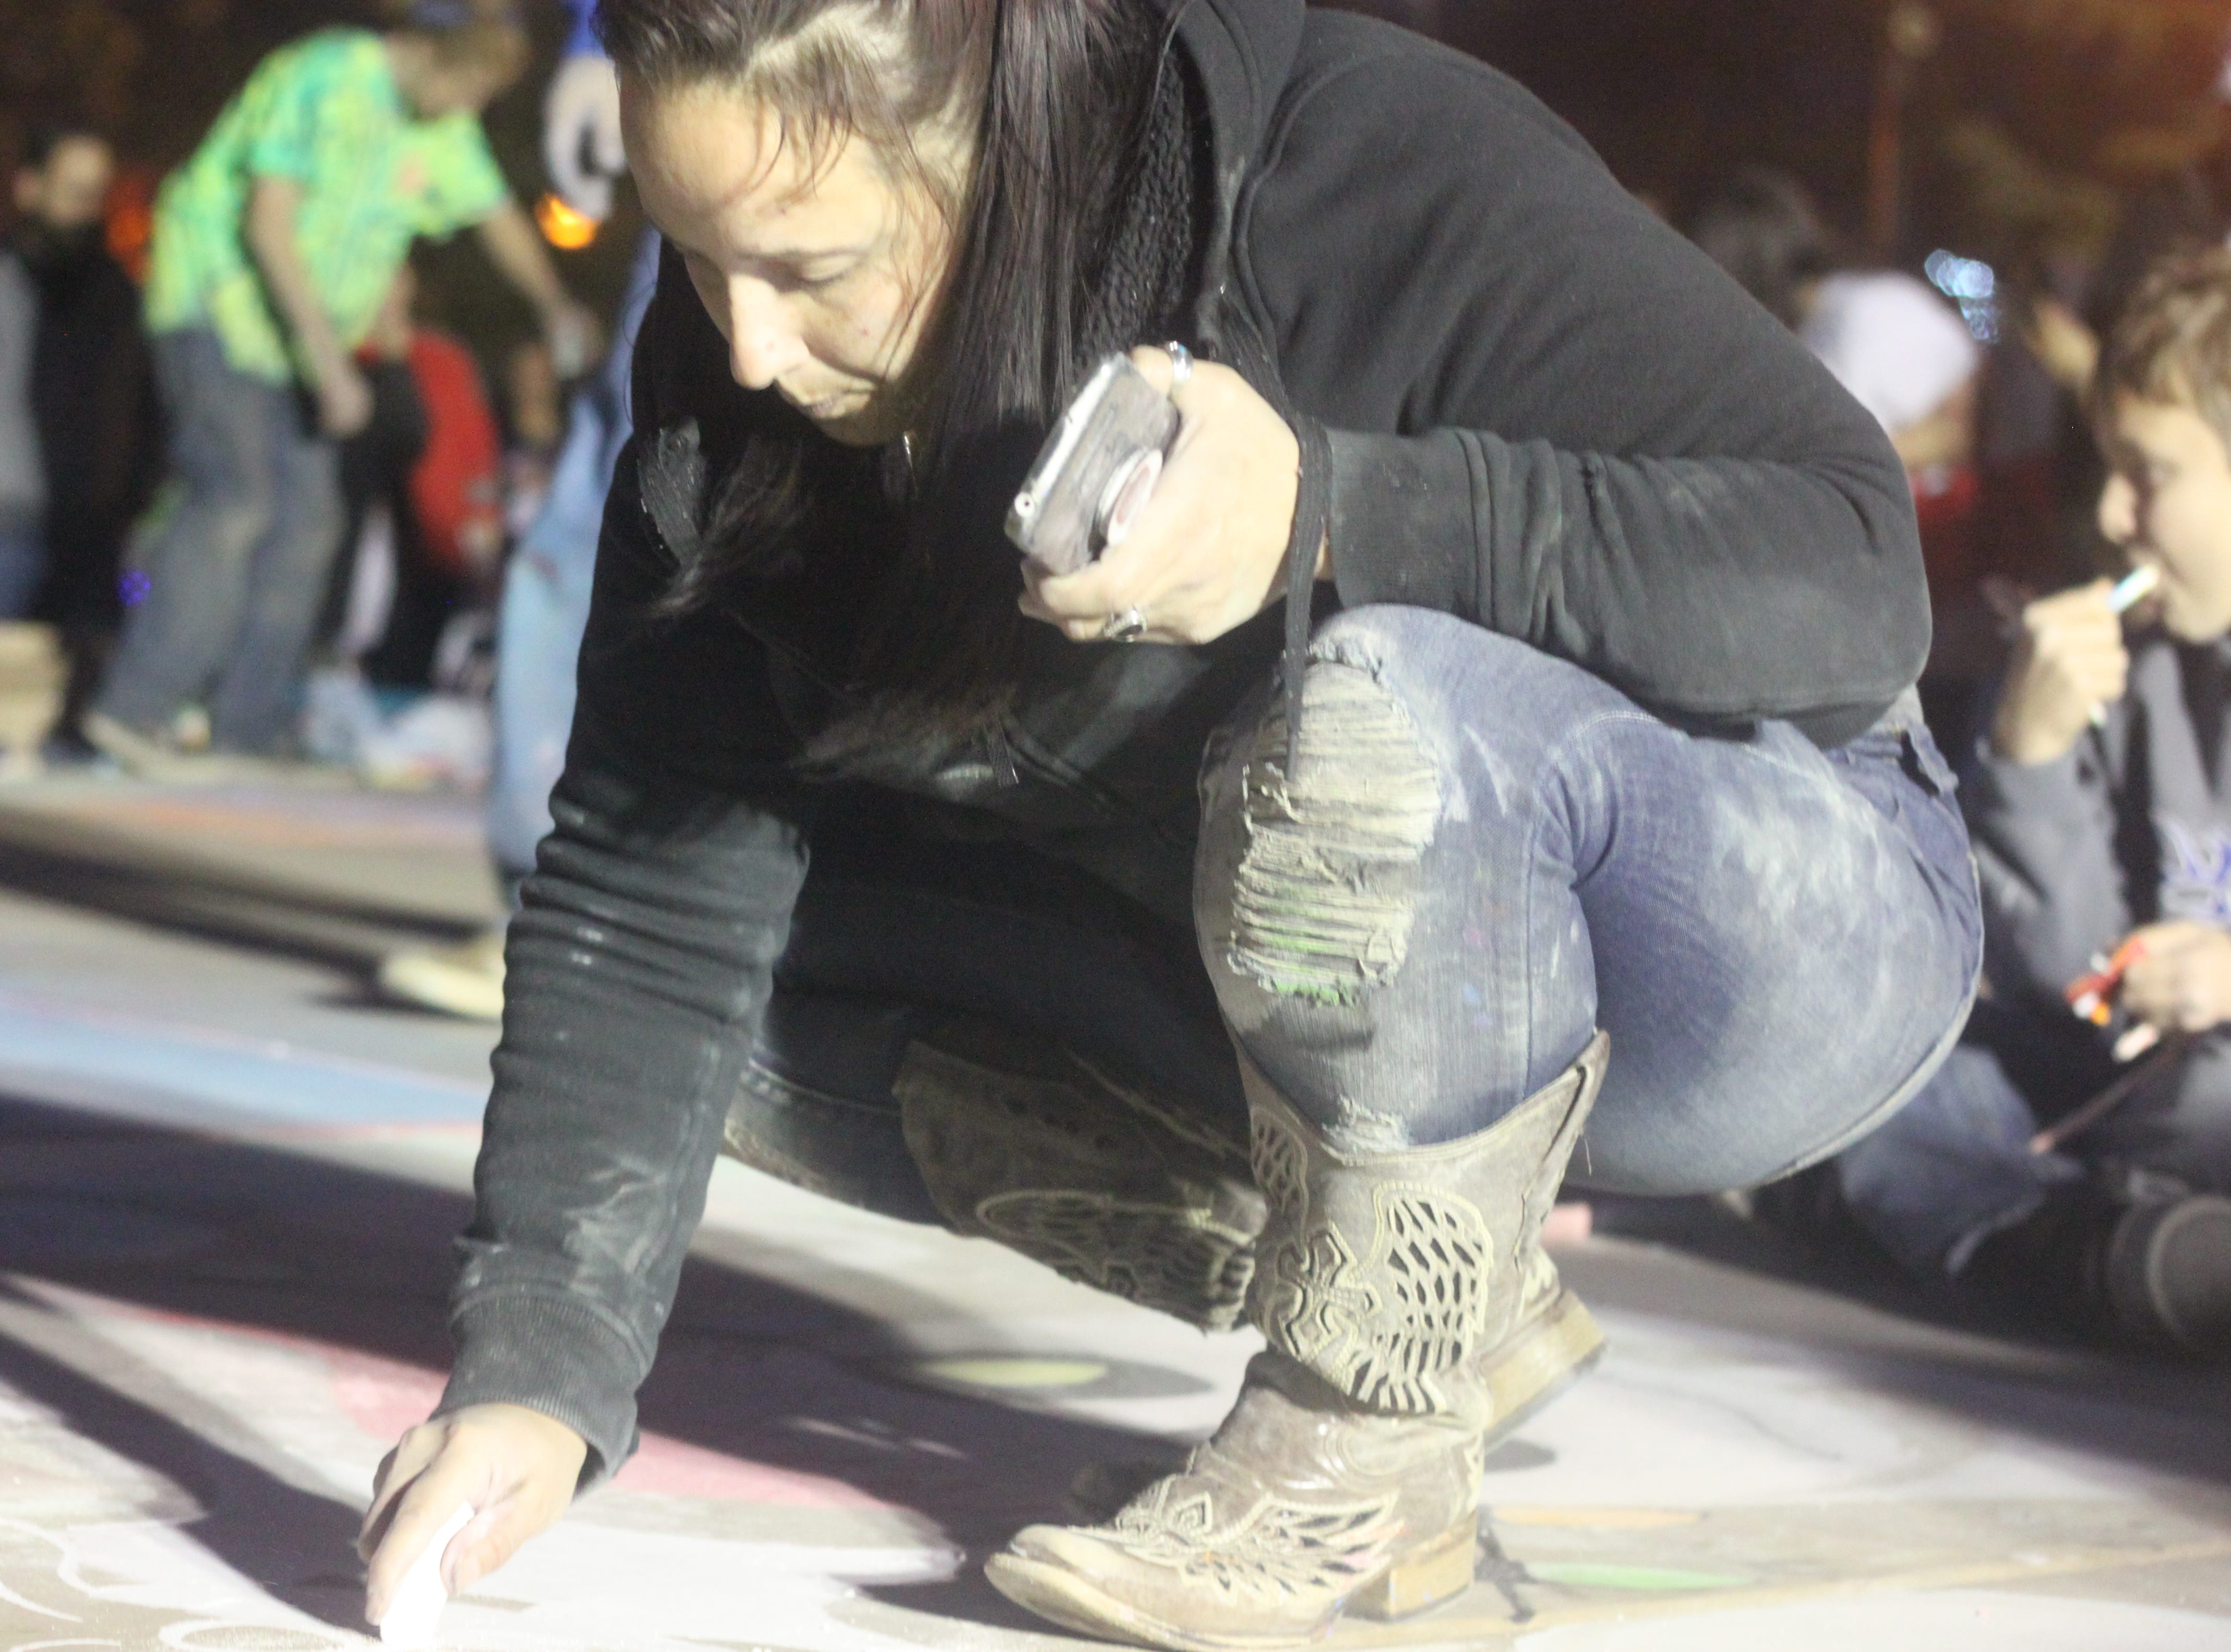 Locals take part in a sidewalk chalk contest, Nov. 24, 2018 at Halagueno Arts Park.